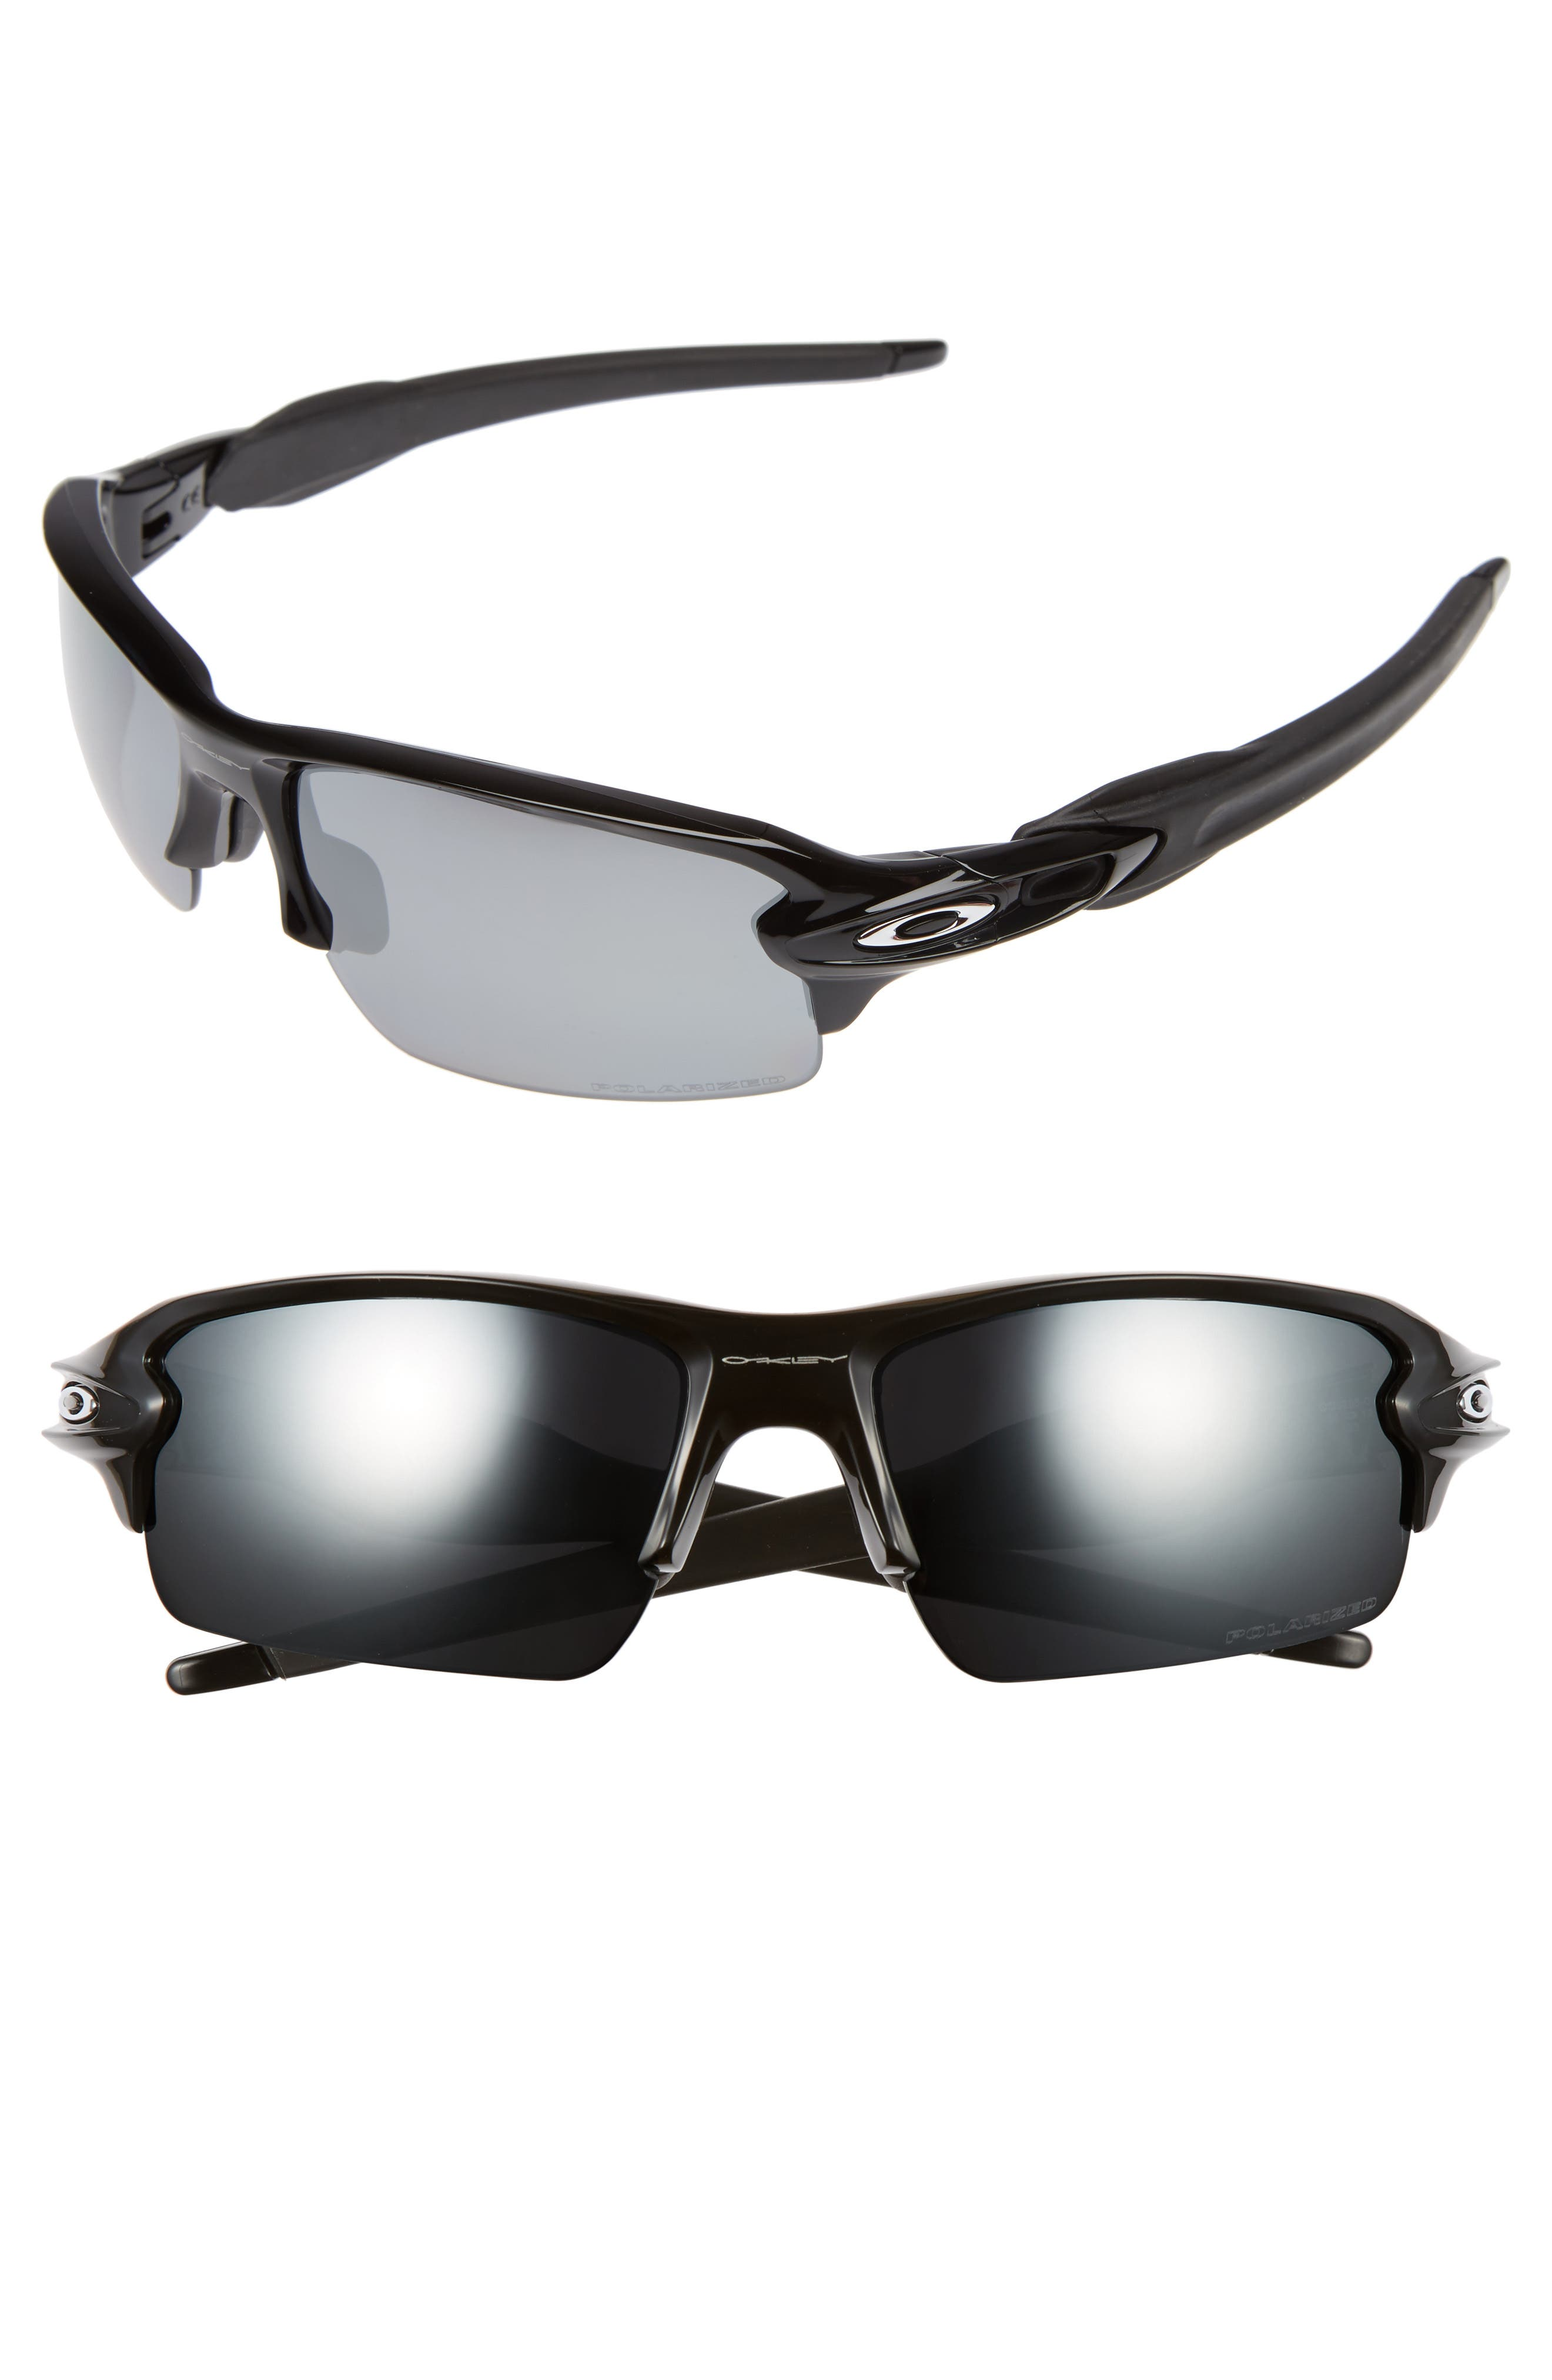 Oakley Flak 2.0 5m Polarized Sunglasses -